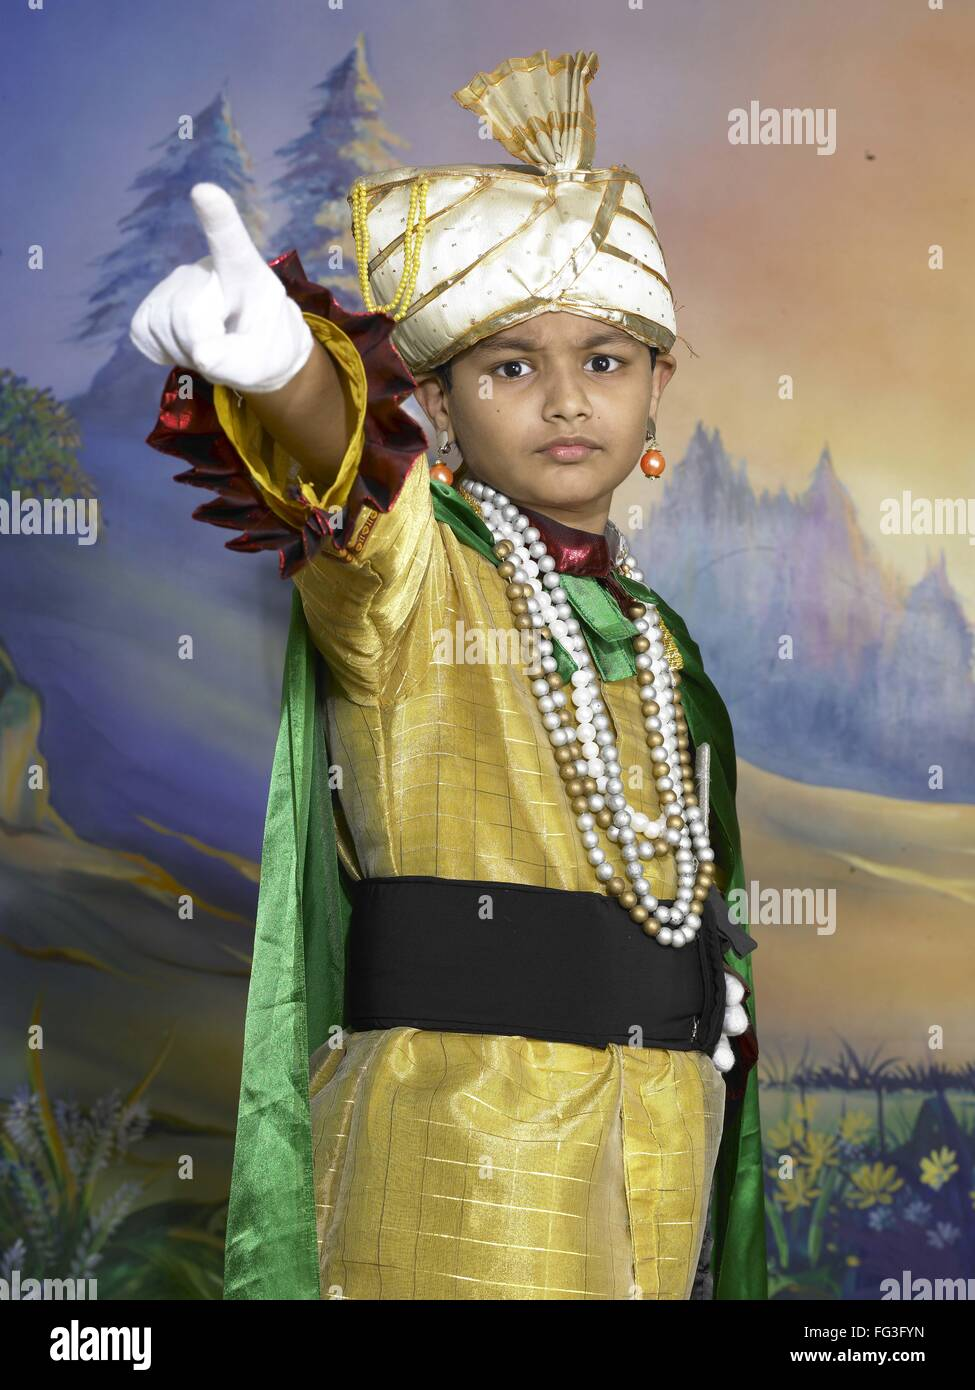 c797d4a6c South Asian Indian boy dressed as prince performing fancy dress competition  on stage in nursery school MR